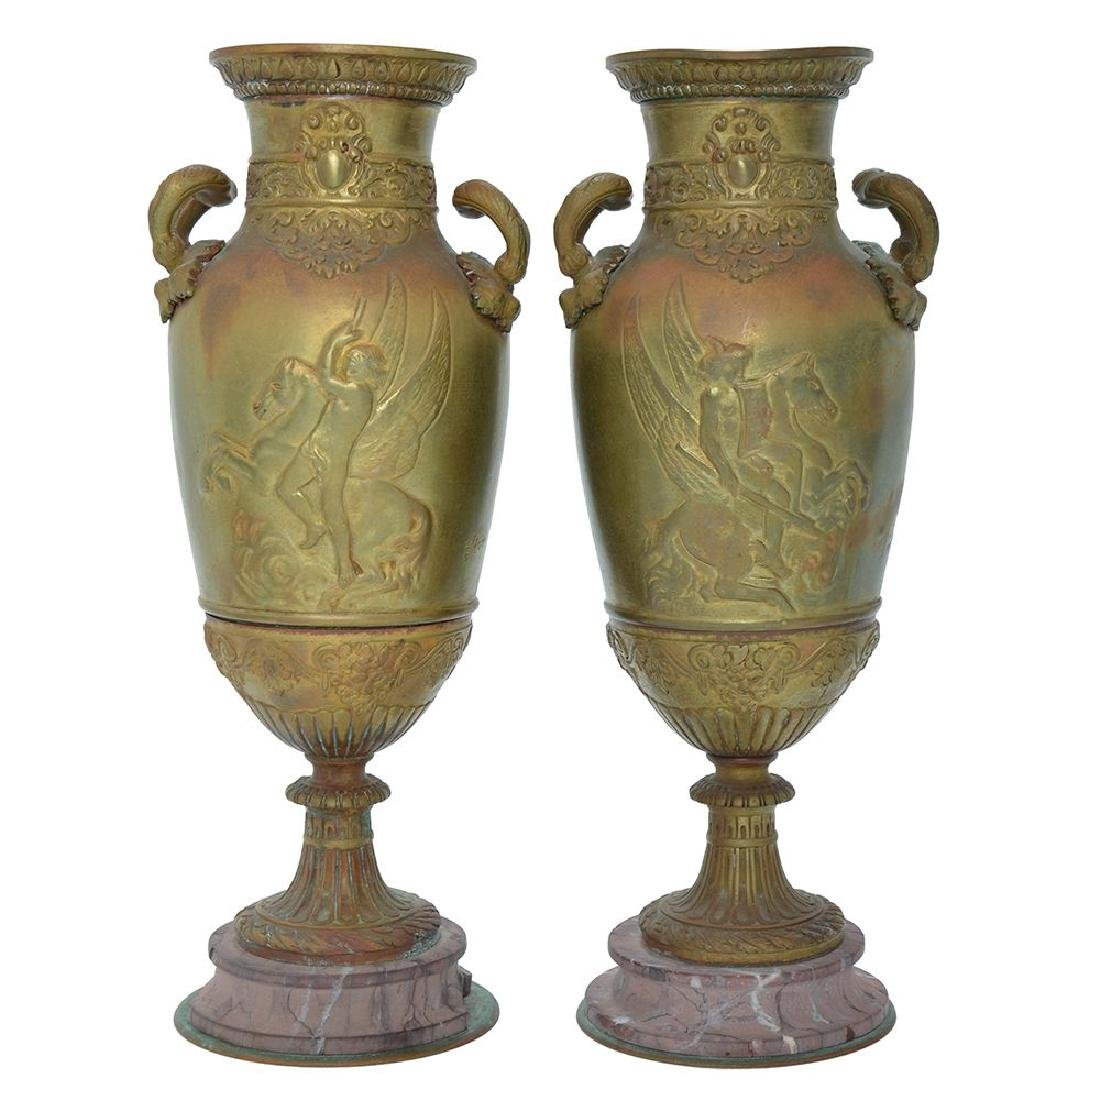 A PAIR OF FRENCH GILT BRONZE URN VASES